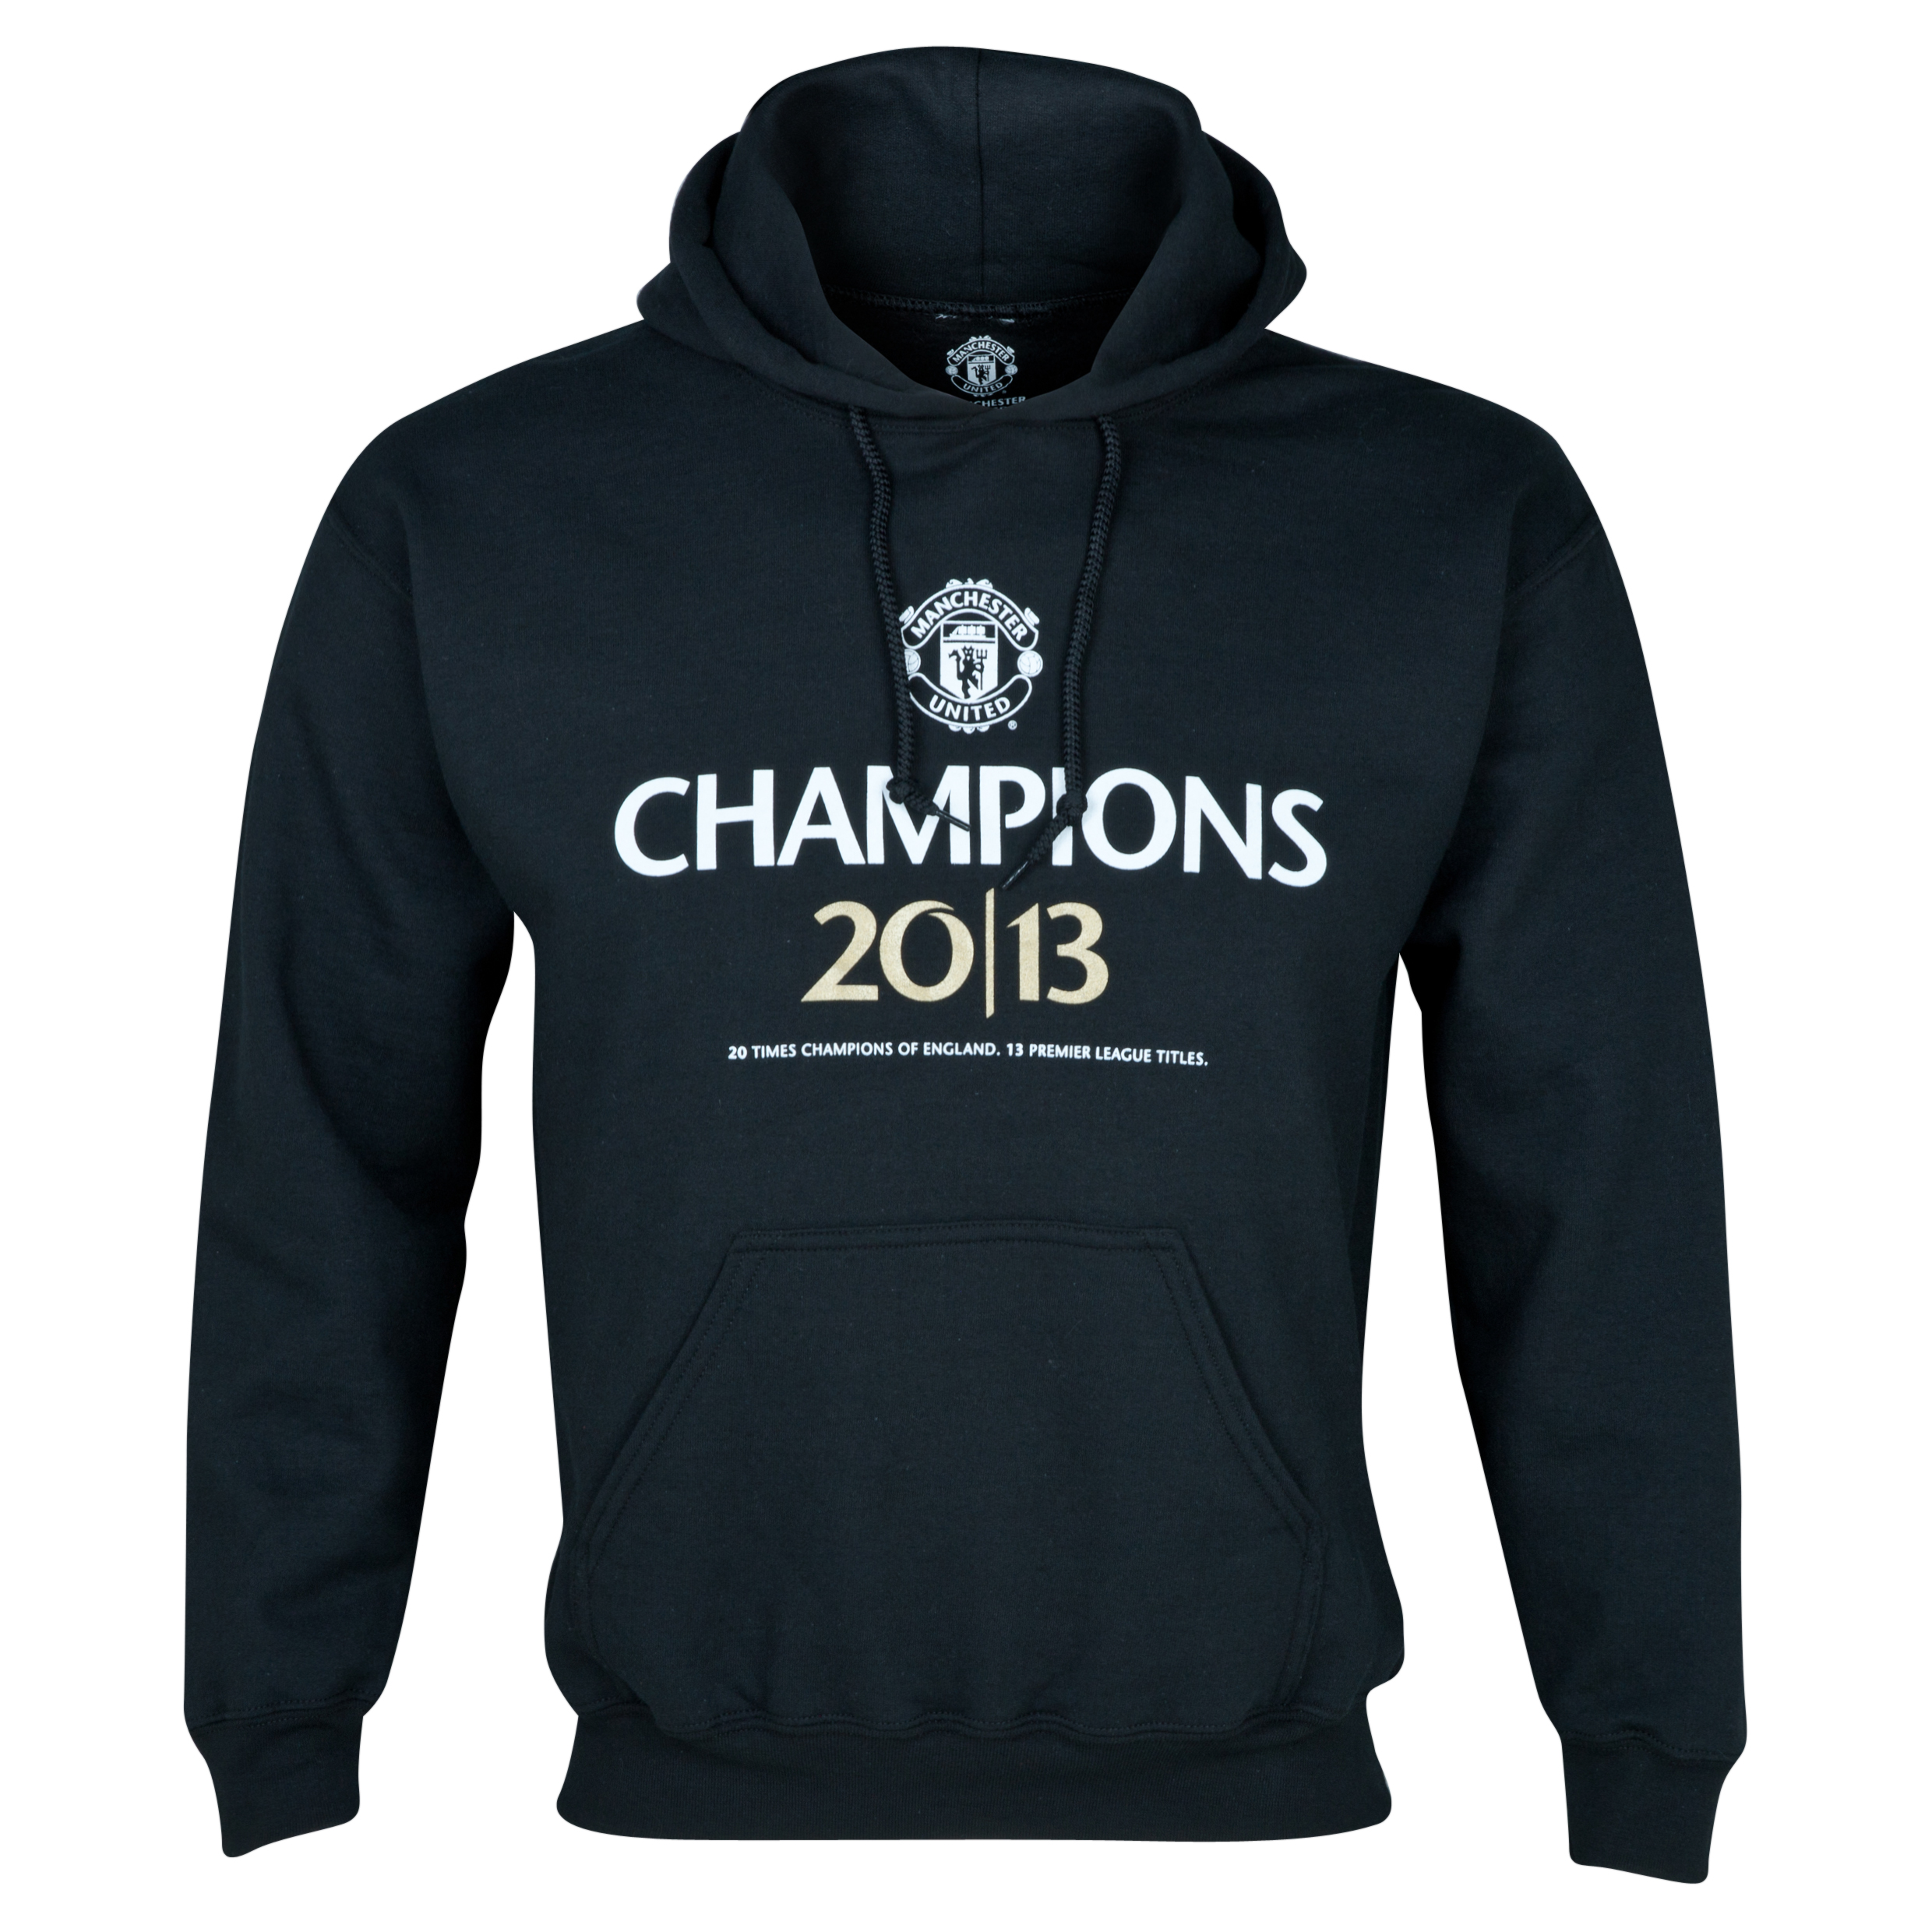 Manchester United 20 Times League Champions Hoodie - Mens Black